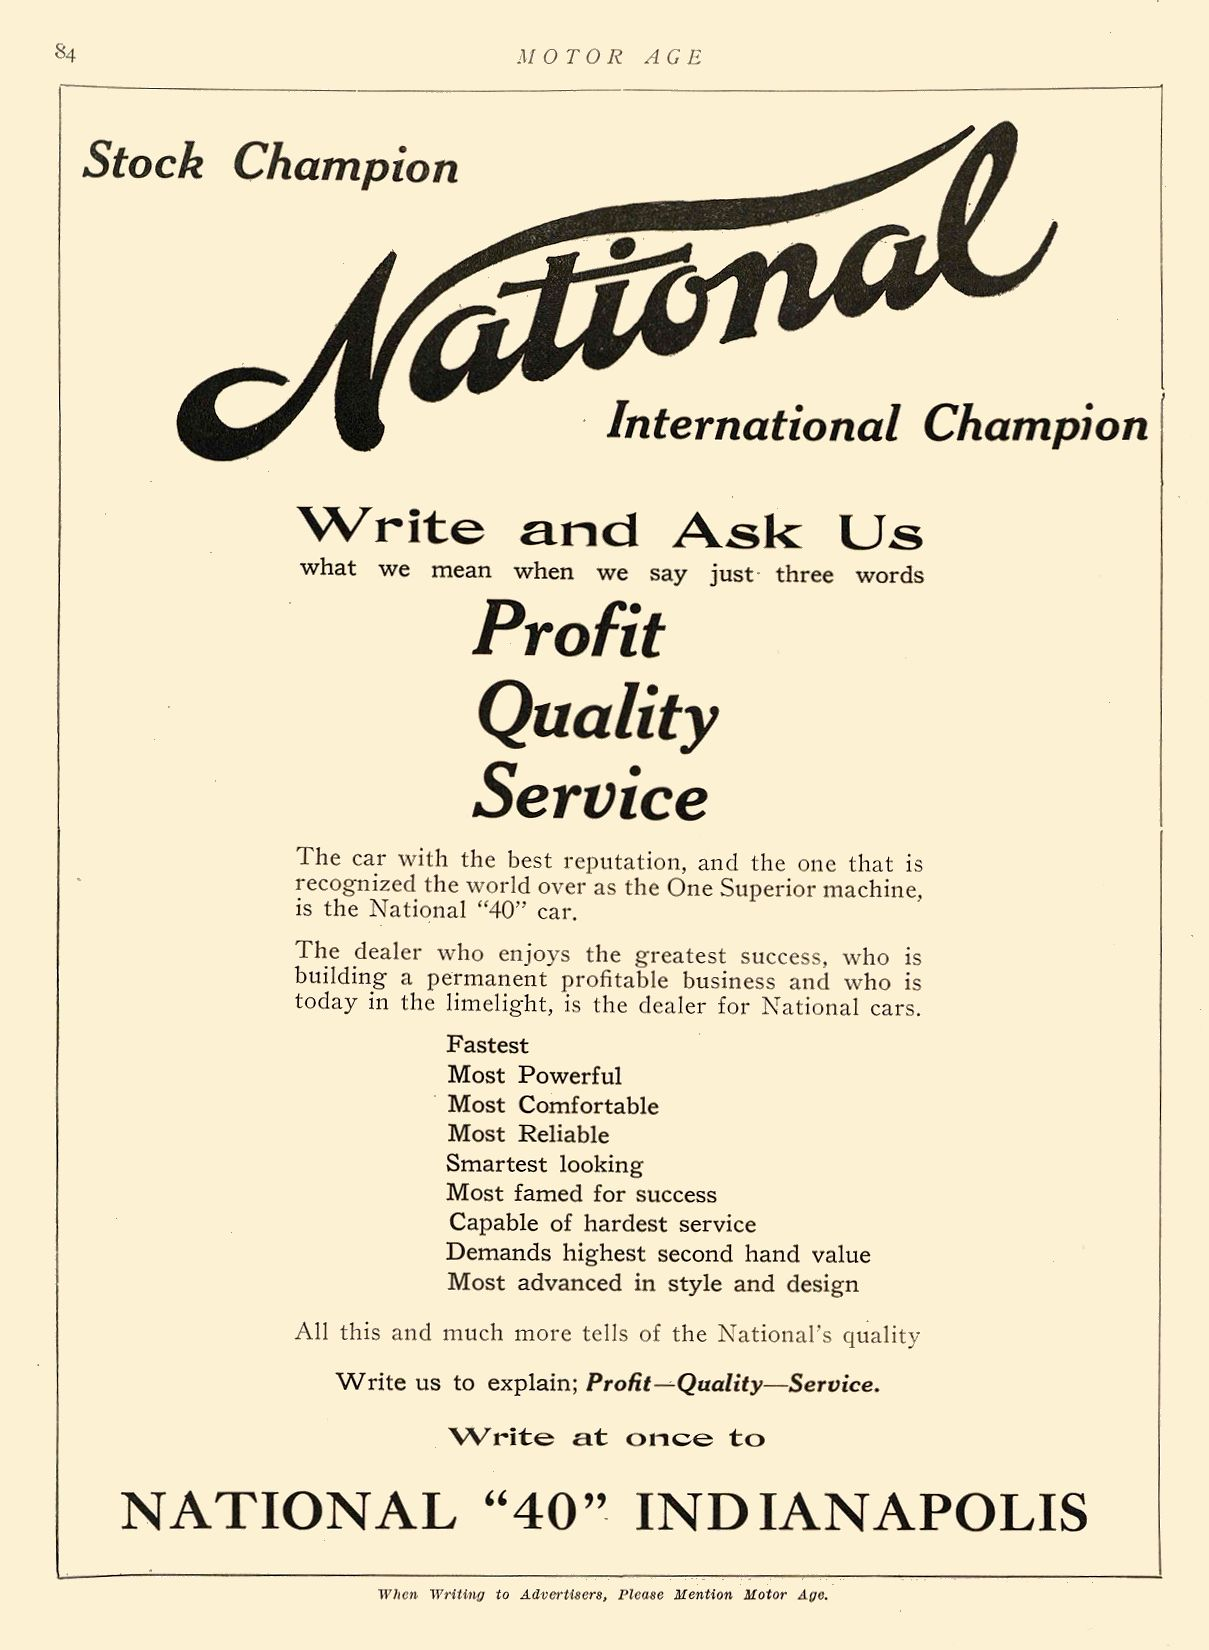 """1912 7 4 NATIONAL National Write and Ask Us NATIONAL """"40,"""" INDIANAPOLIS Indianapolis, IND MOTOR AGE July 4, 1912 8.5″x11.75″ page 84"""